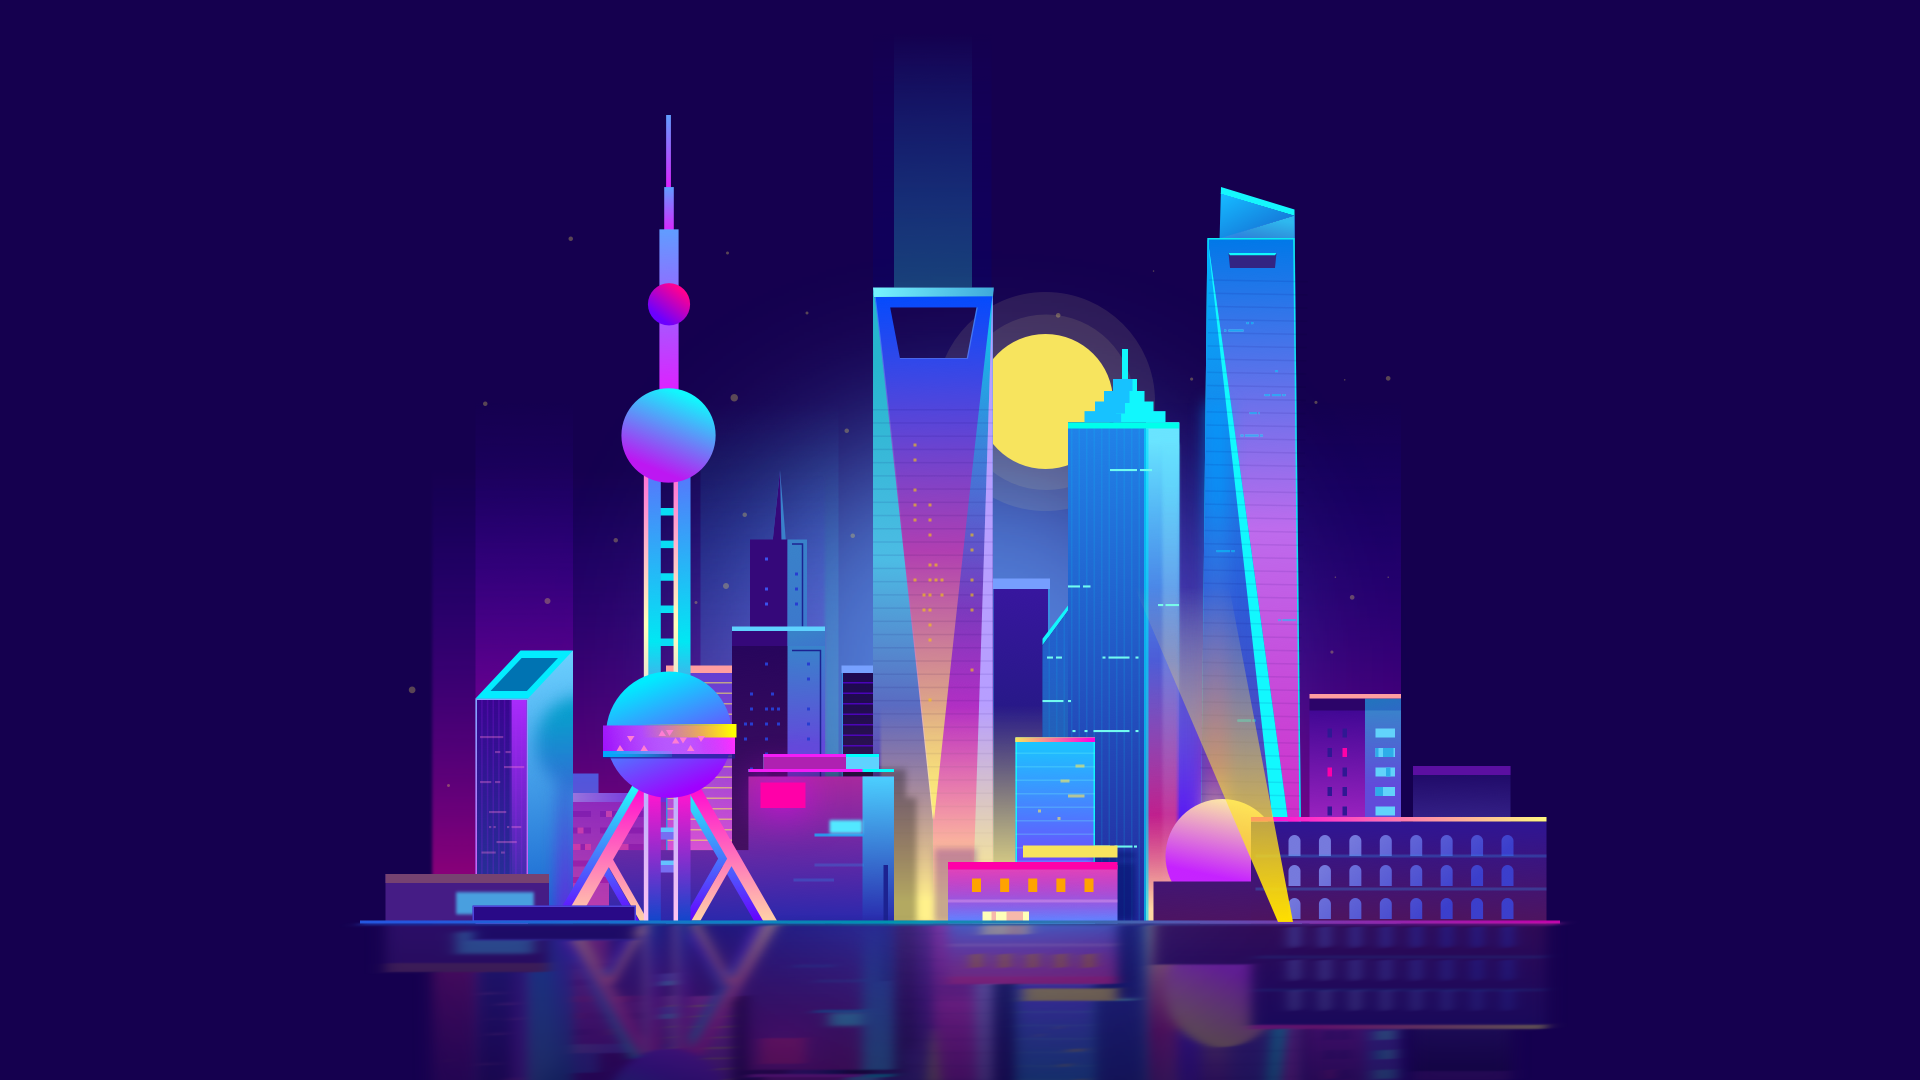 Shanghai City Hd Shanghai City City Illustration Vaporwave Wallpaper